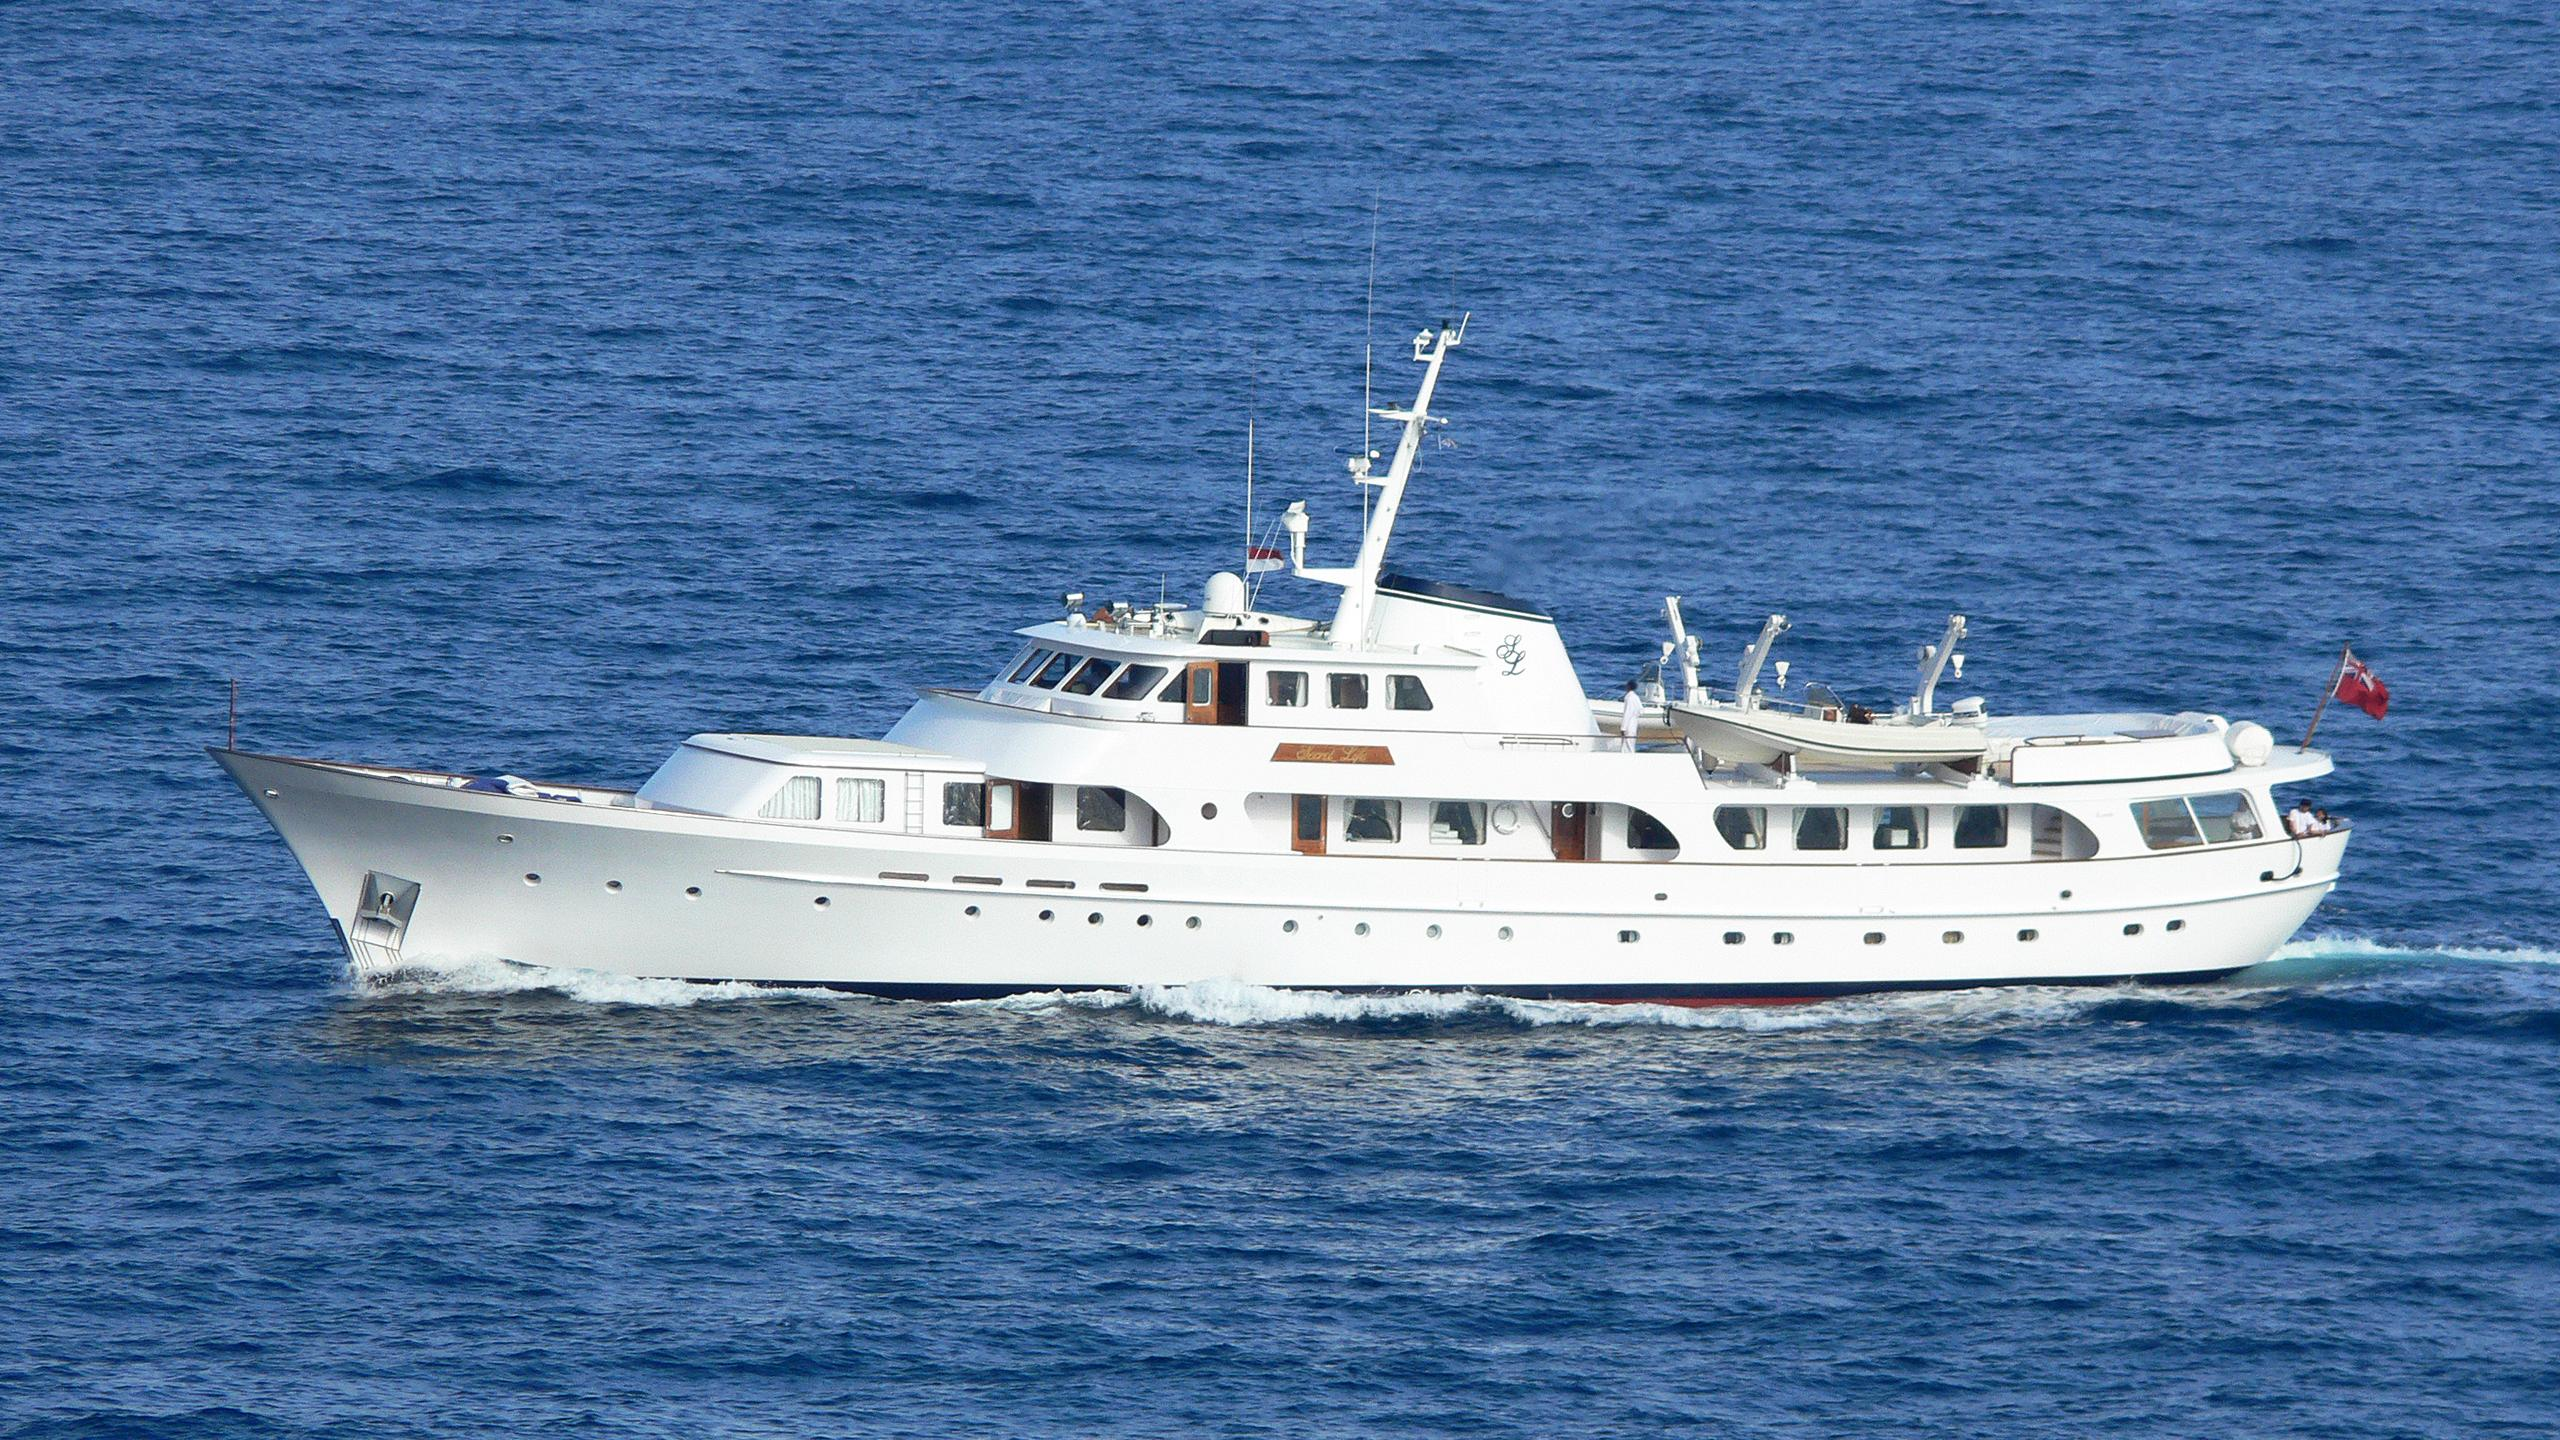 secret-life-motor-yacht-feadship-1973-45m-profile